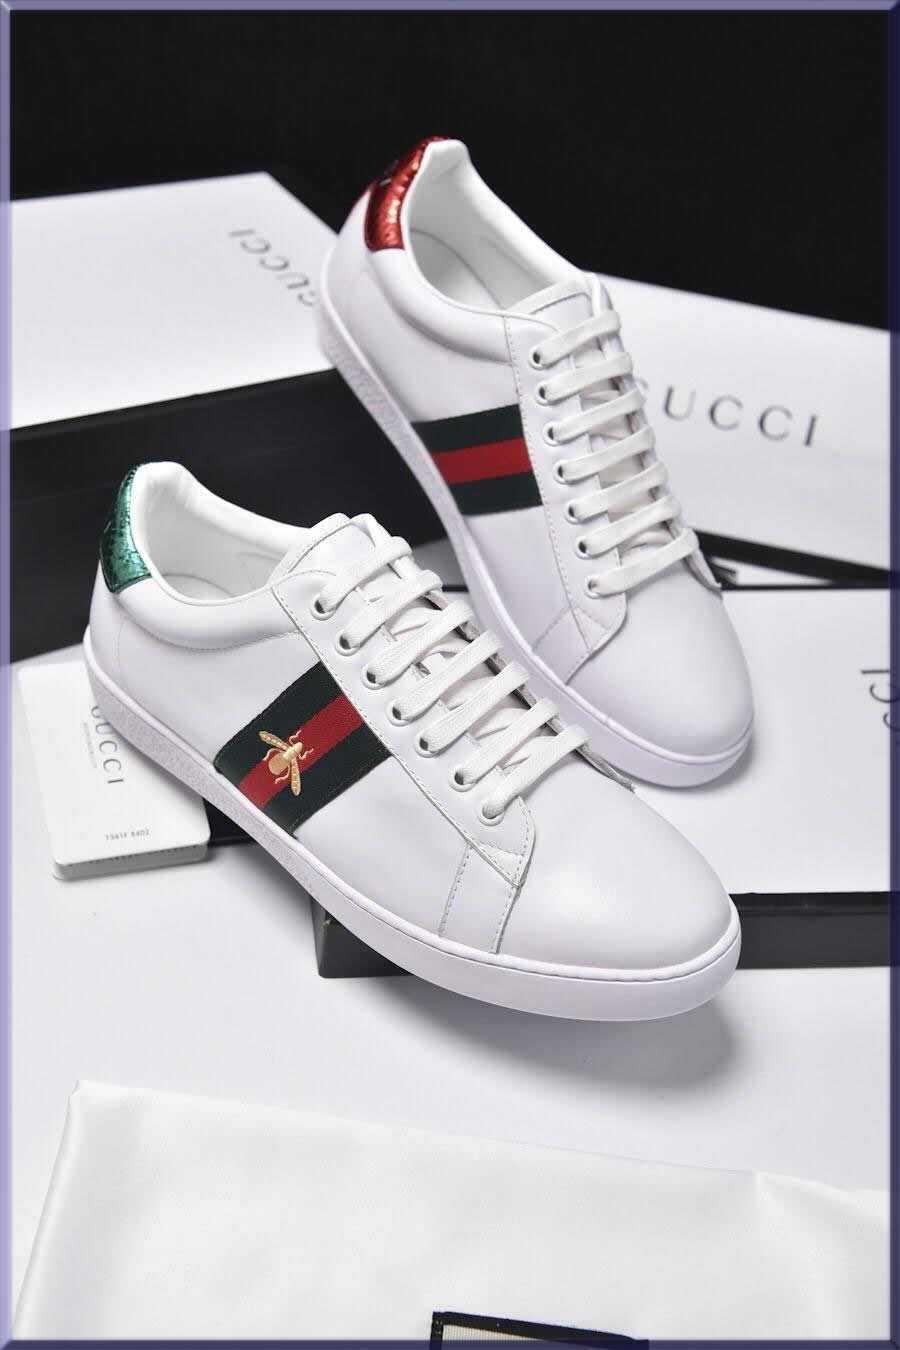 white latest sneakers for men